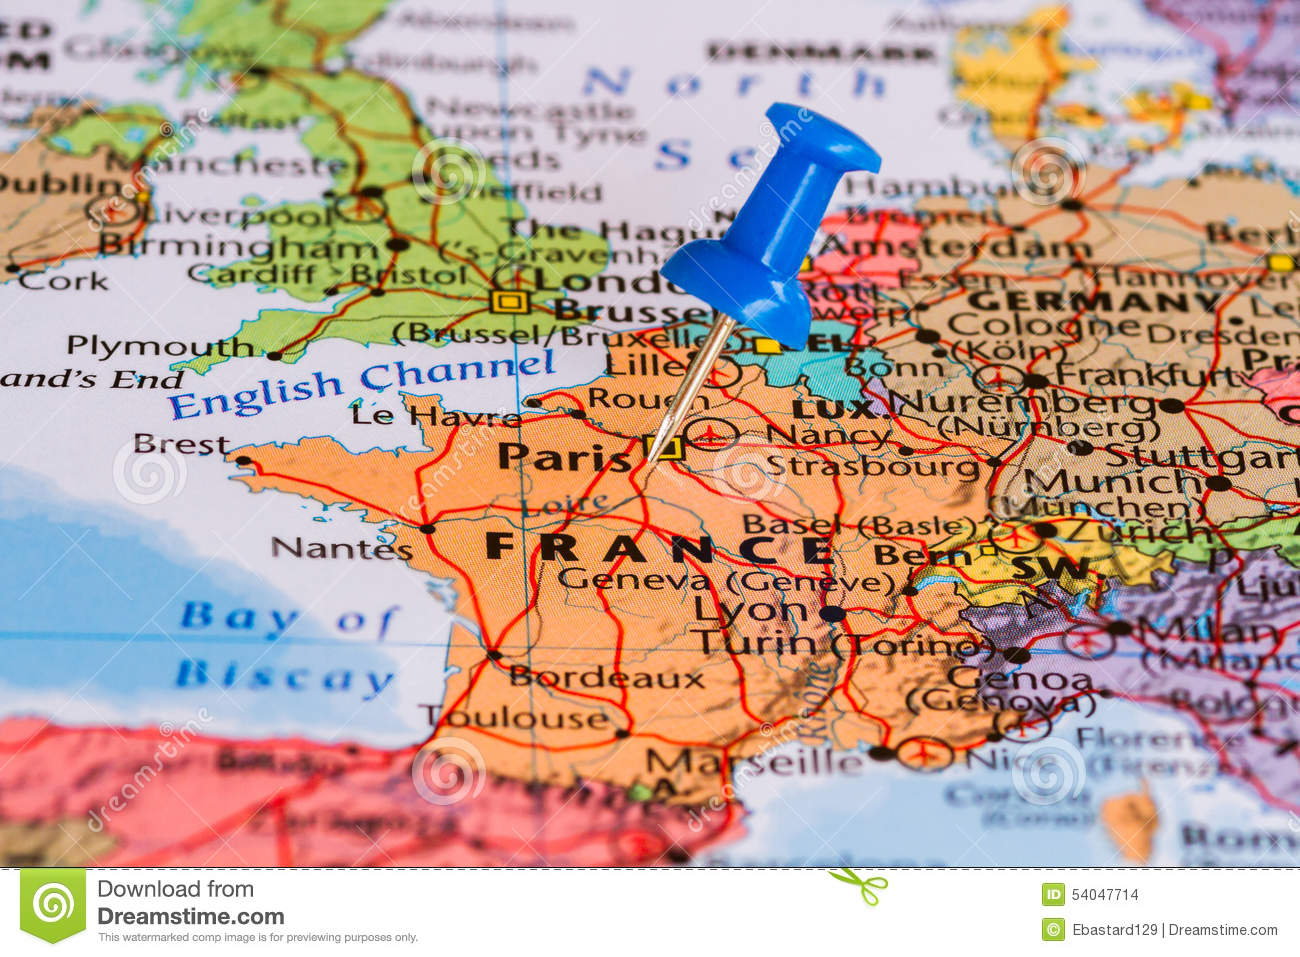 Geographical Map Of France.Map Of France Stock Photo Image Of Design Geographical 54047714